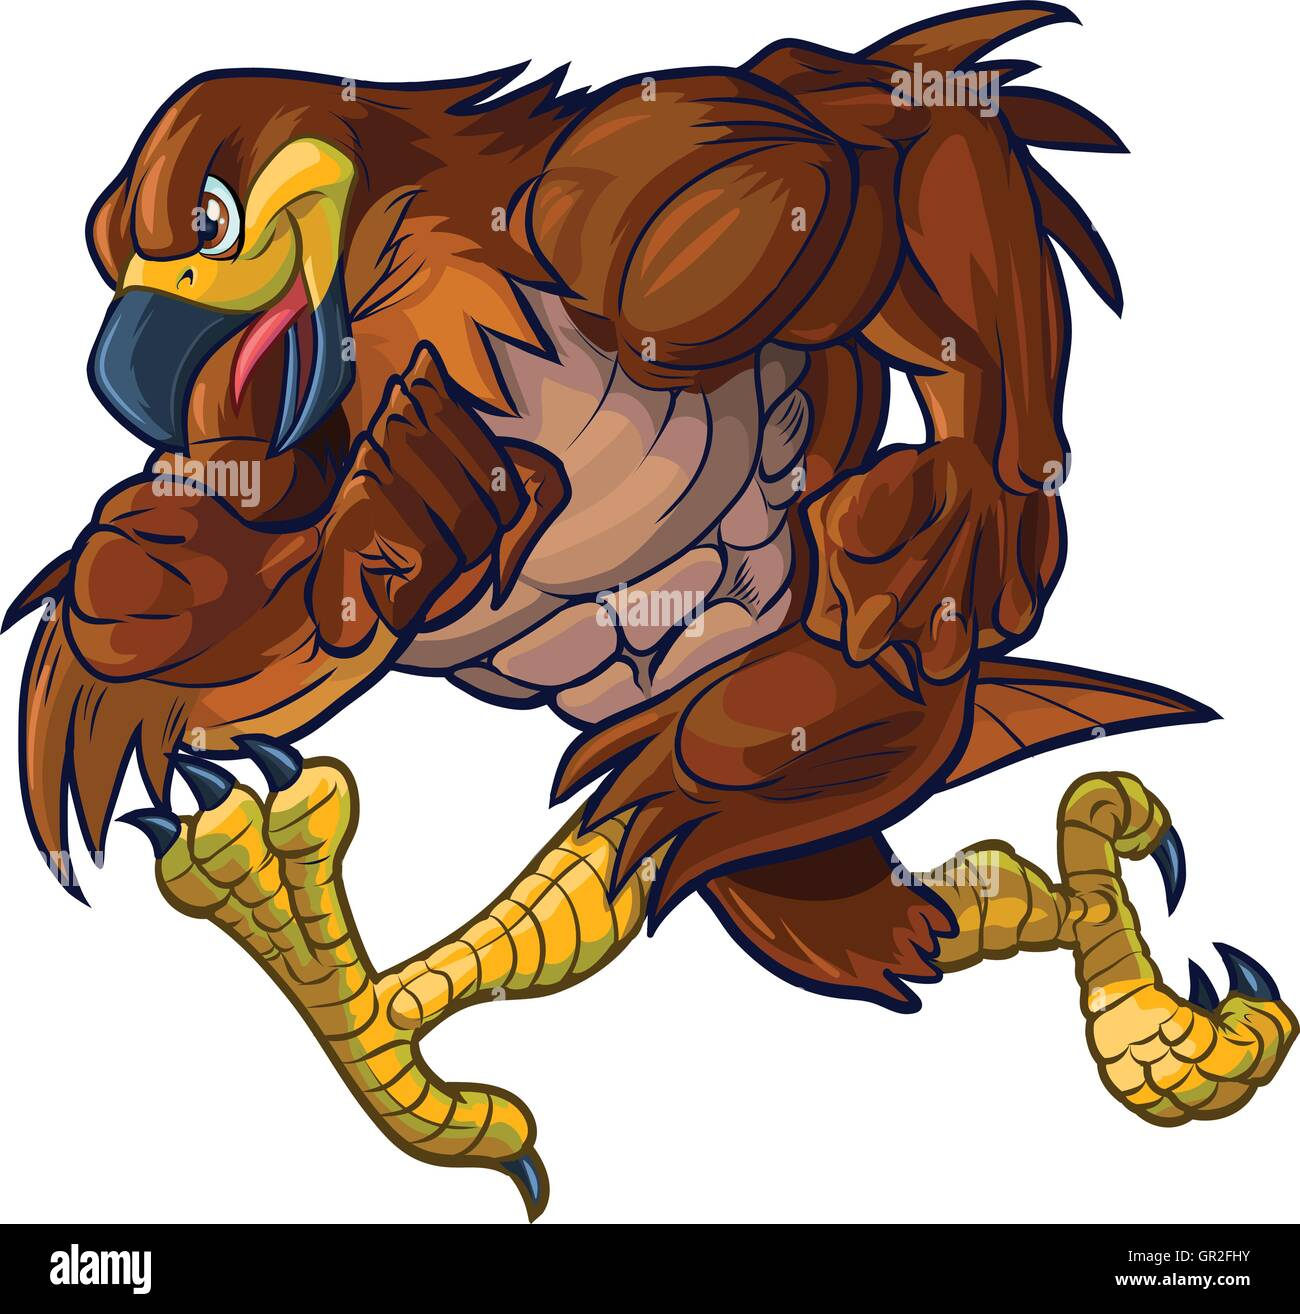 Vector cartoon clip art illustration side view of a tough muscular hawk, falcon, or eagle mascot running. - Stock Image